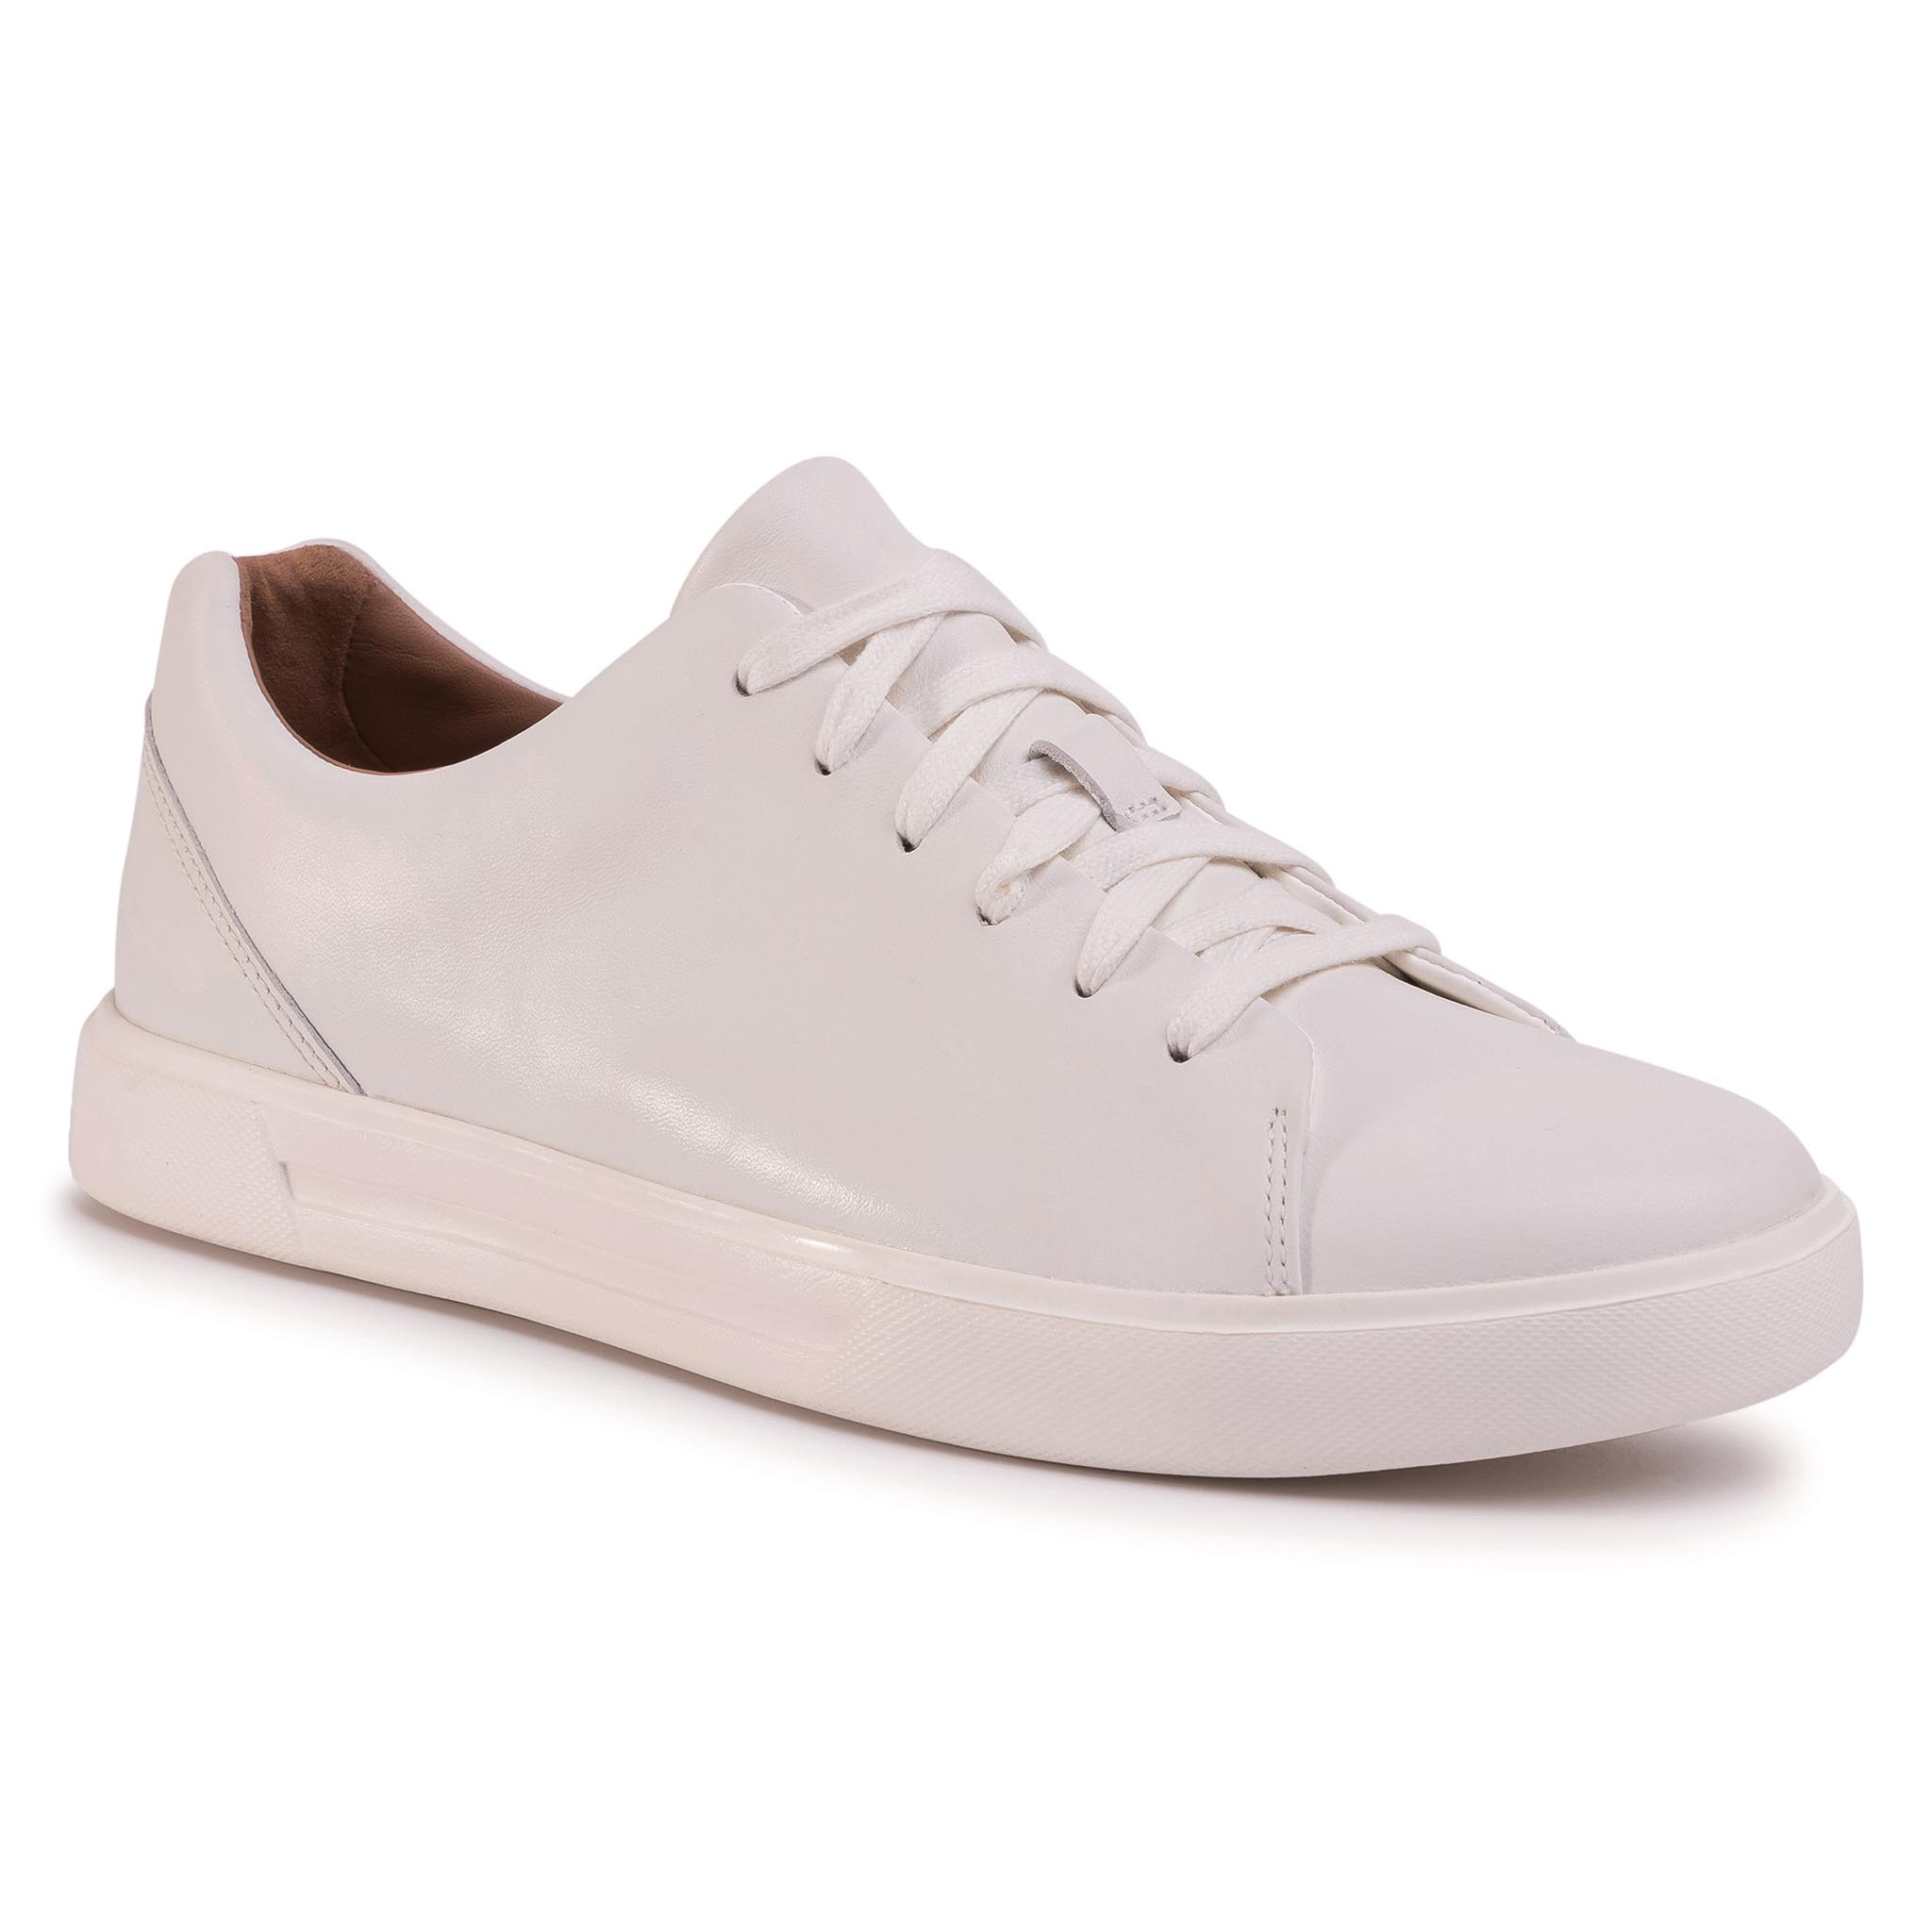 Sneakers CLARKS - Un Costa Lace 261401647 White Leather